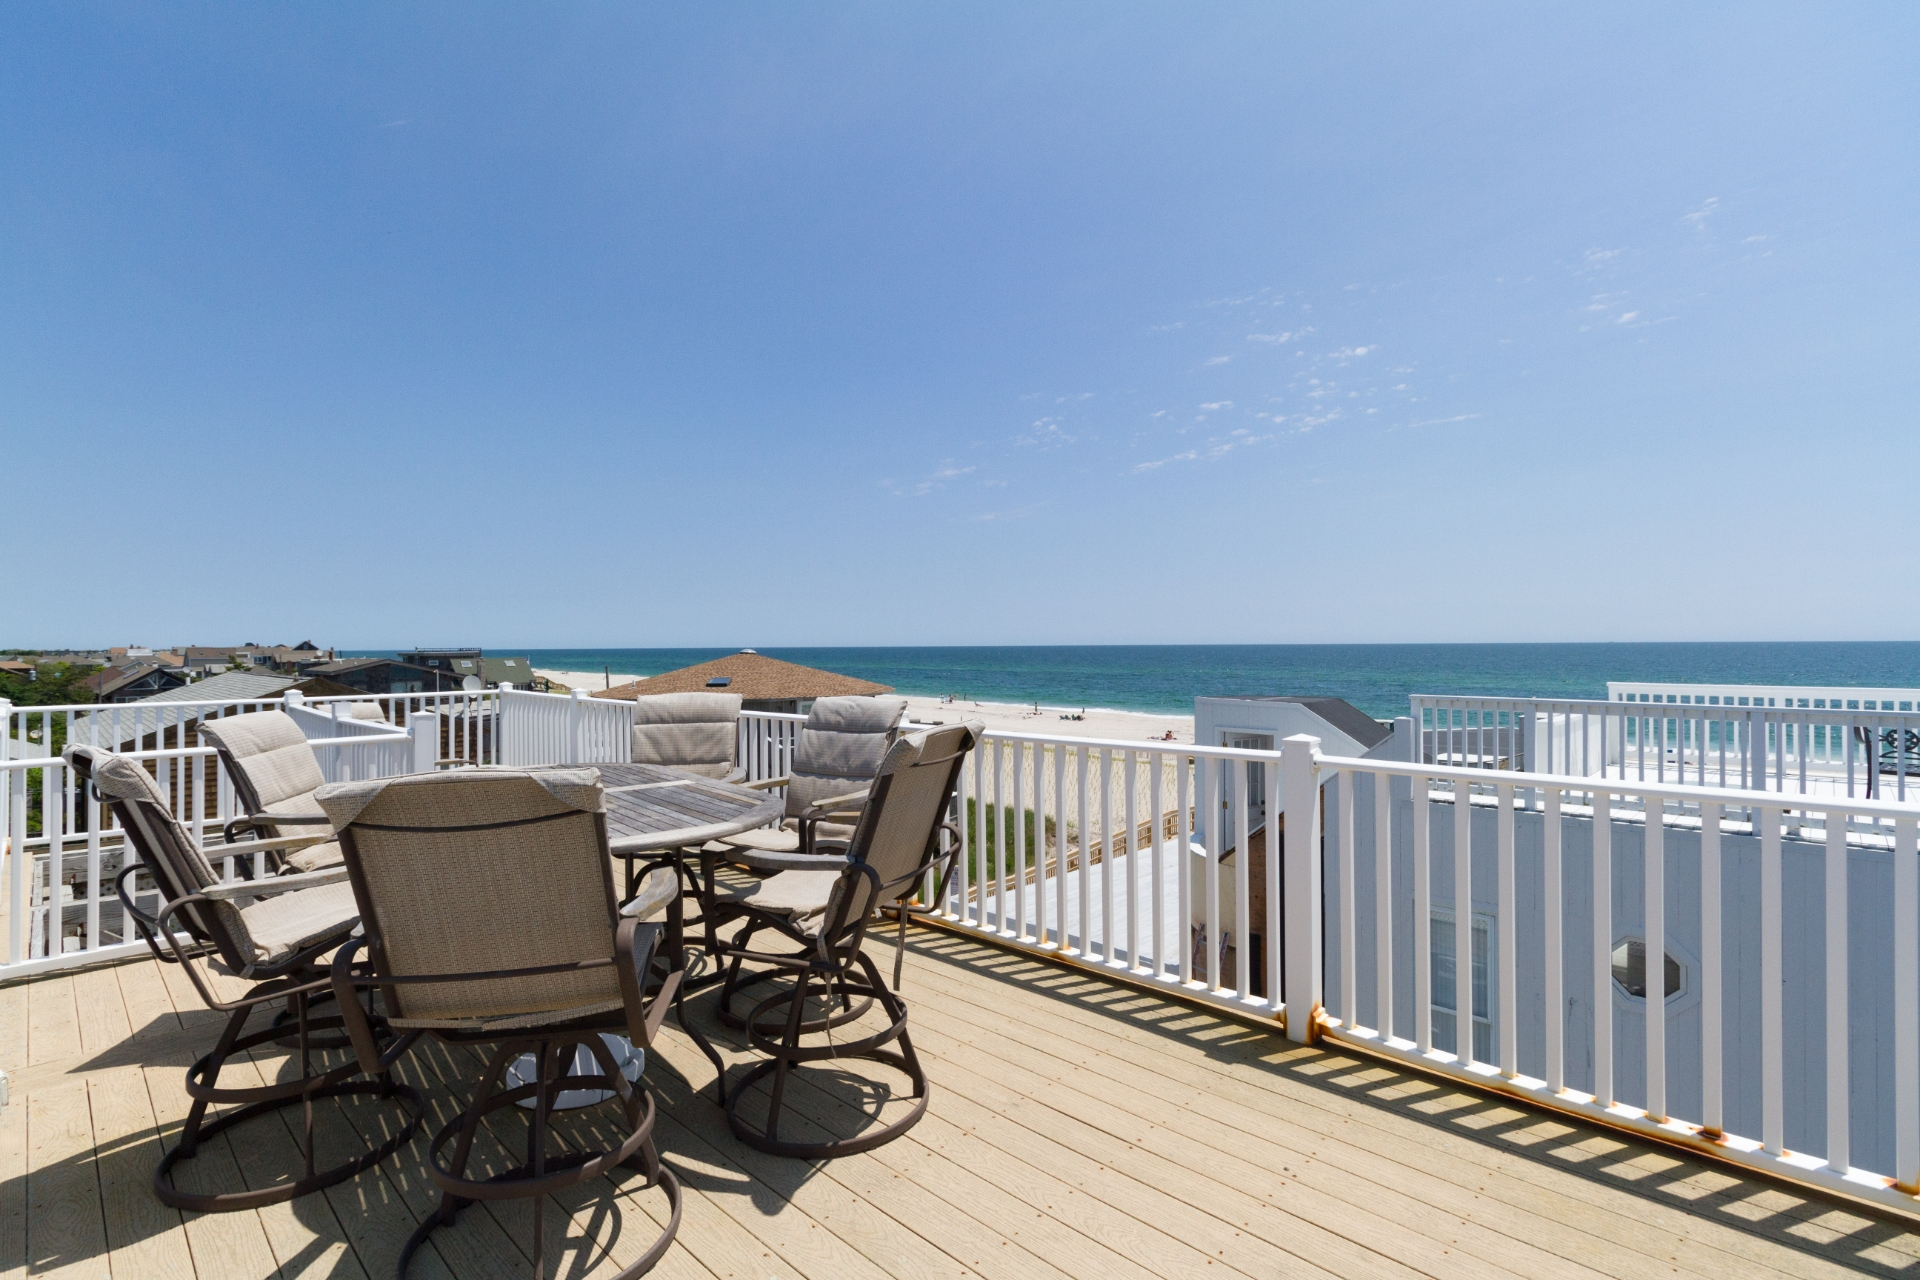 Spend your summer vacation relaxing in this beautiful house right off the ocean.This gorgeous home is in a great location June 19 to July 7 available.